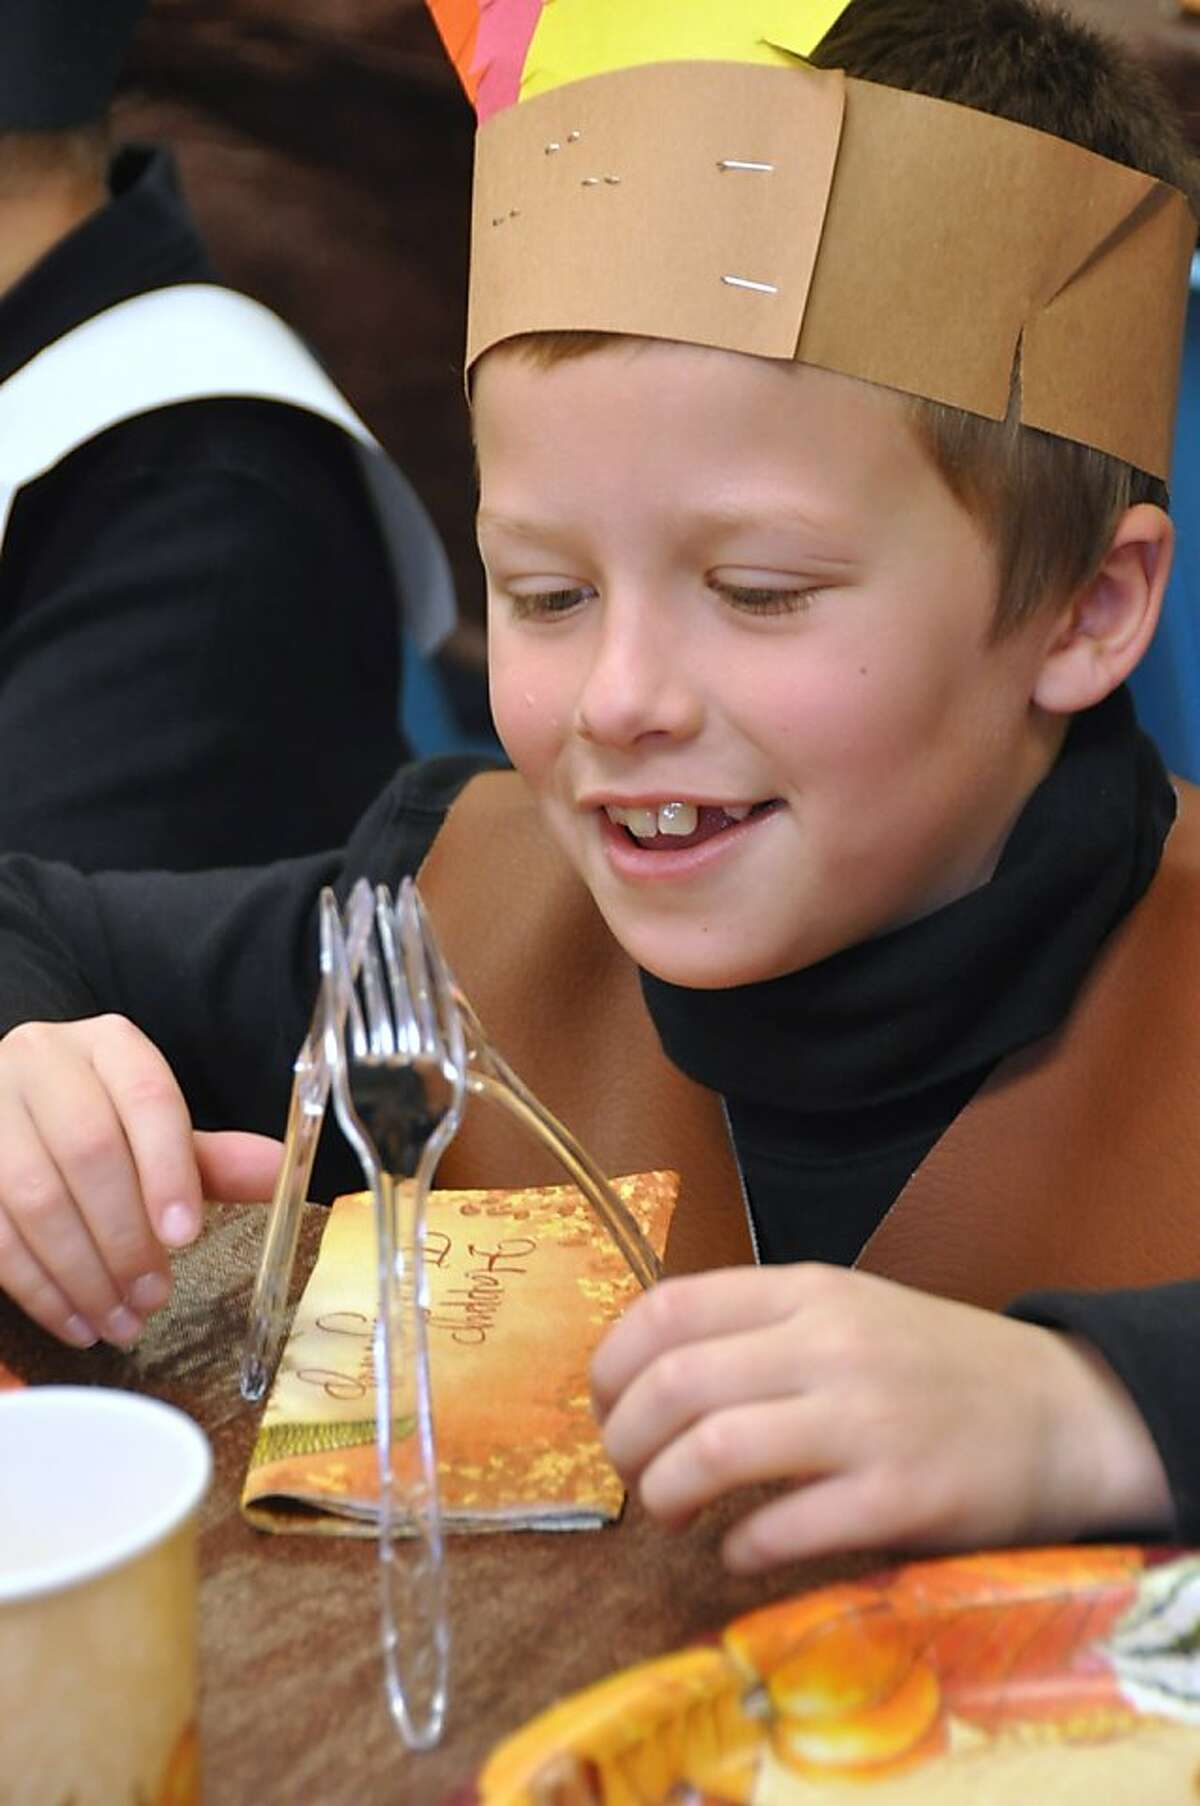 As pupils re-create the first Thanksgiving at Fairview Elementary School in Mountain Top, Pa., third-grader Chuckie Lake builds a napkin tepee with plastic utensils. Just like the Indians did during long-winded Pilgrim toasts.